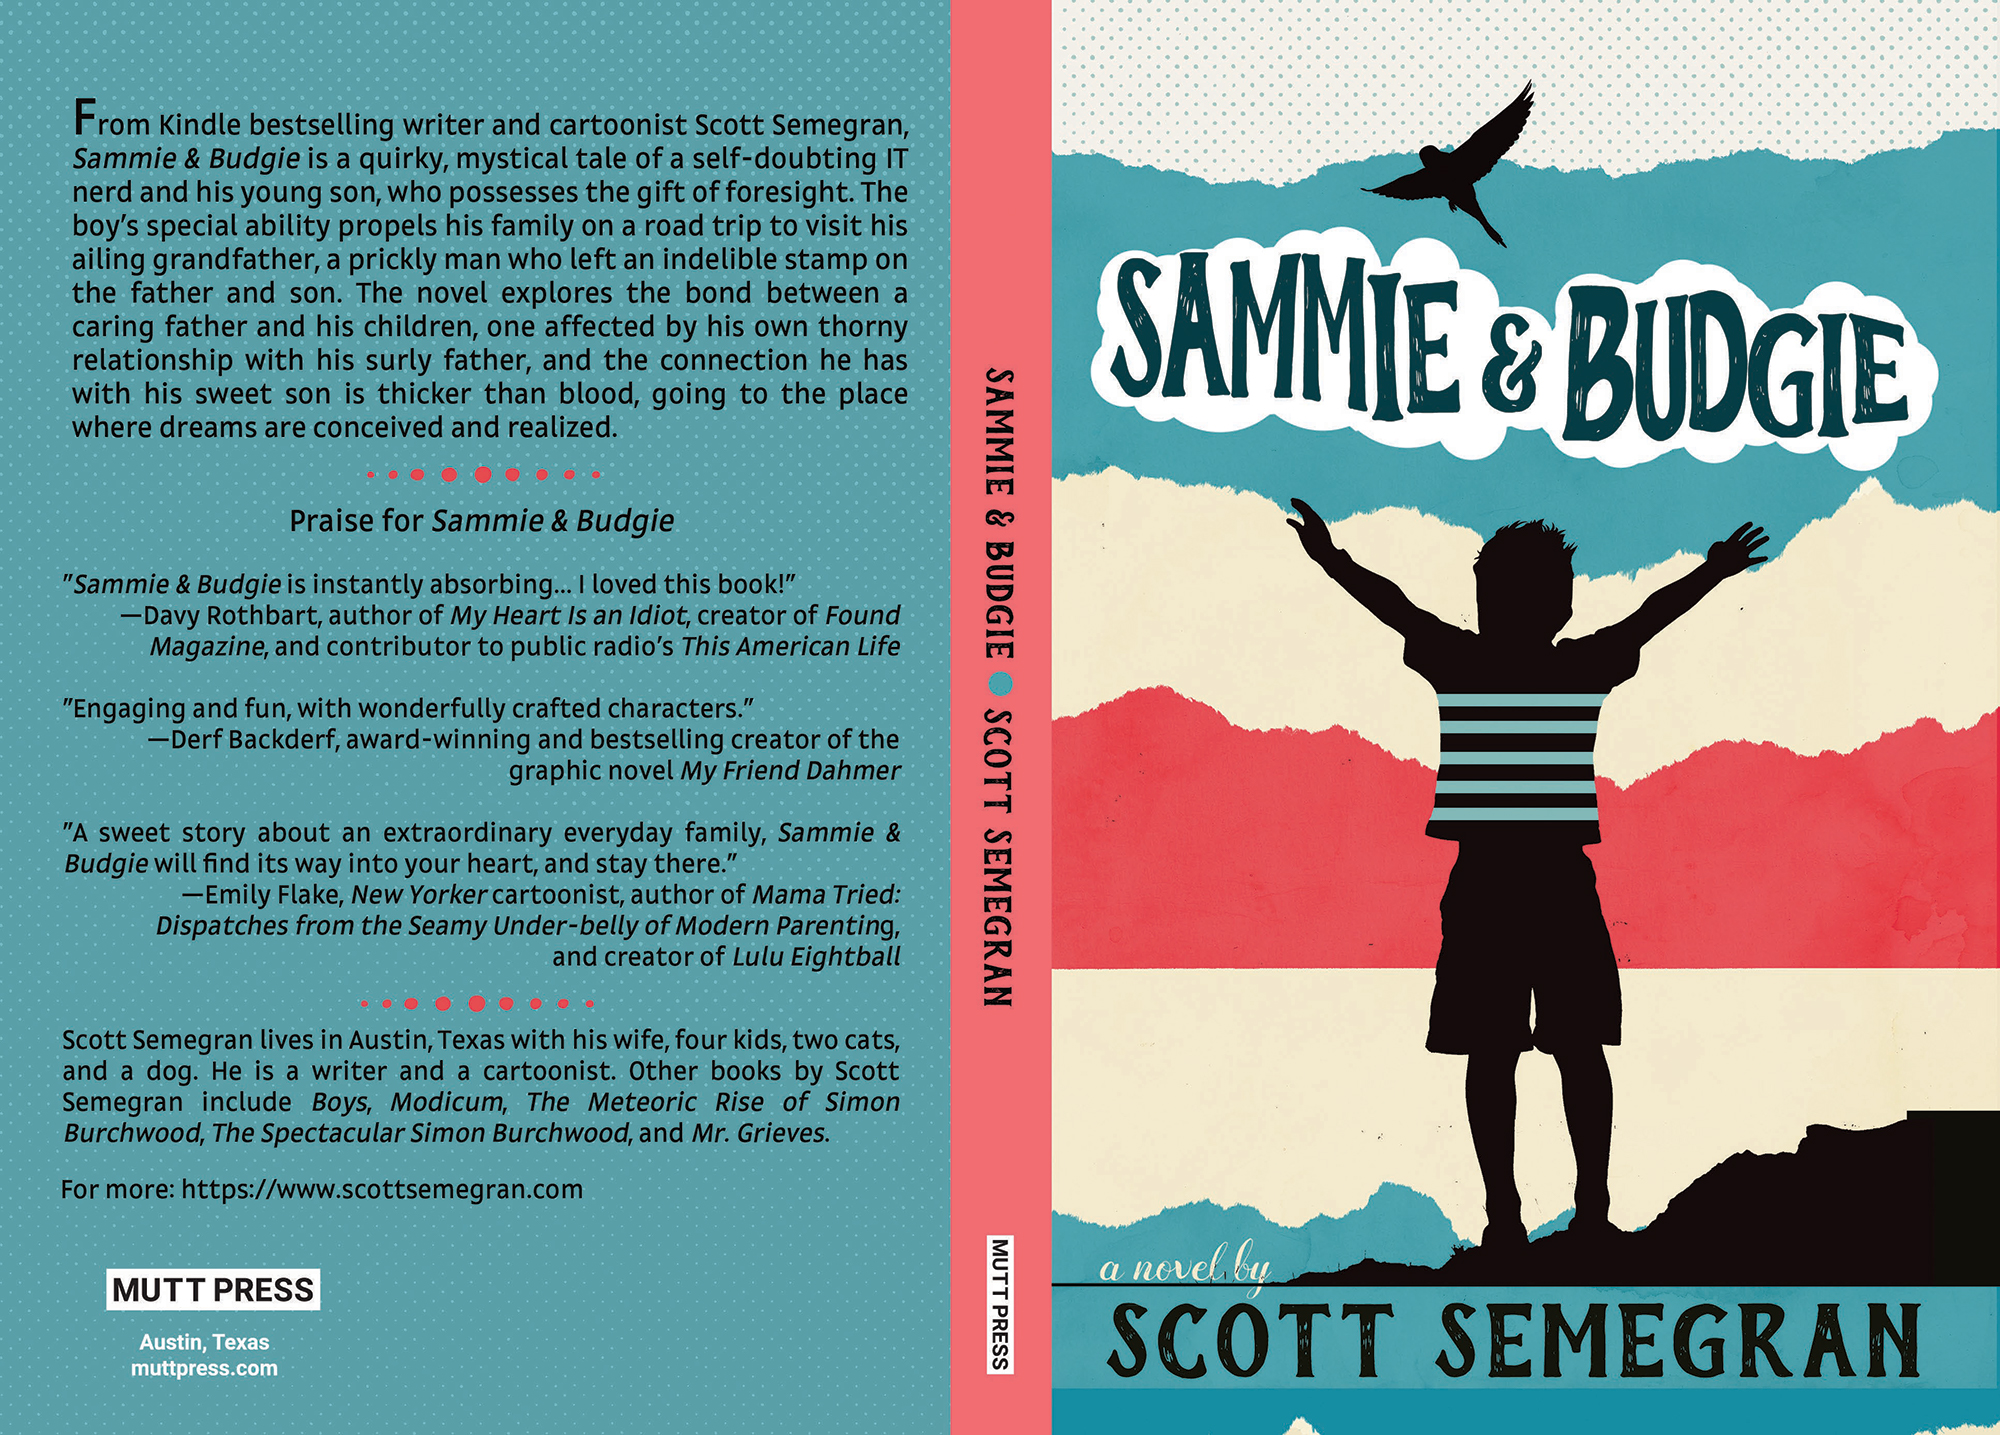 Book Cover Design Winners : Sammie budgie texas authors book cover awards winner